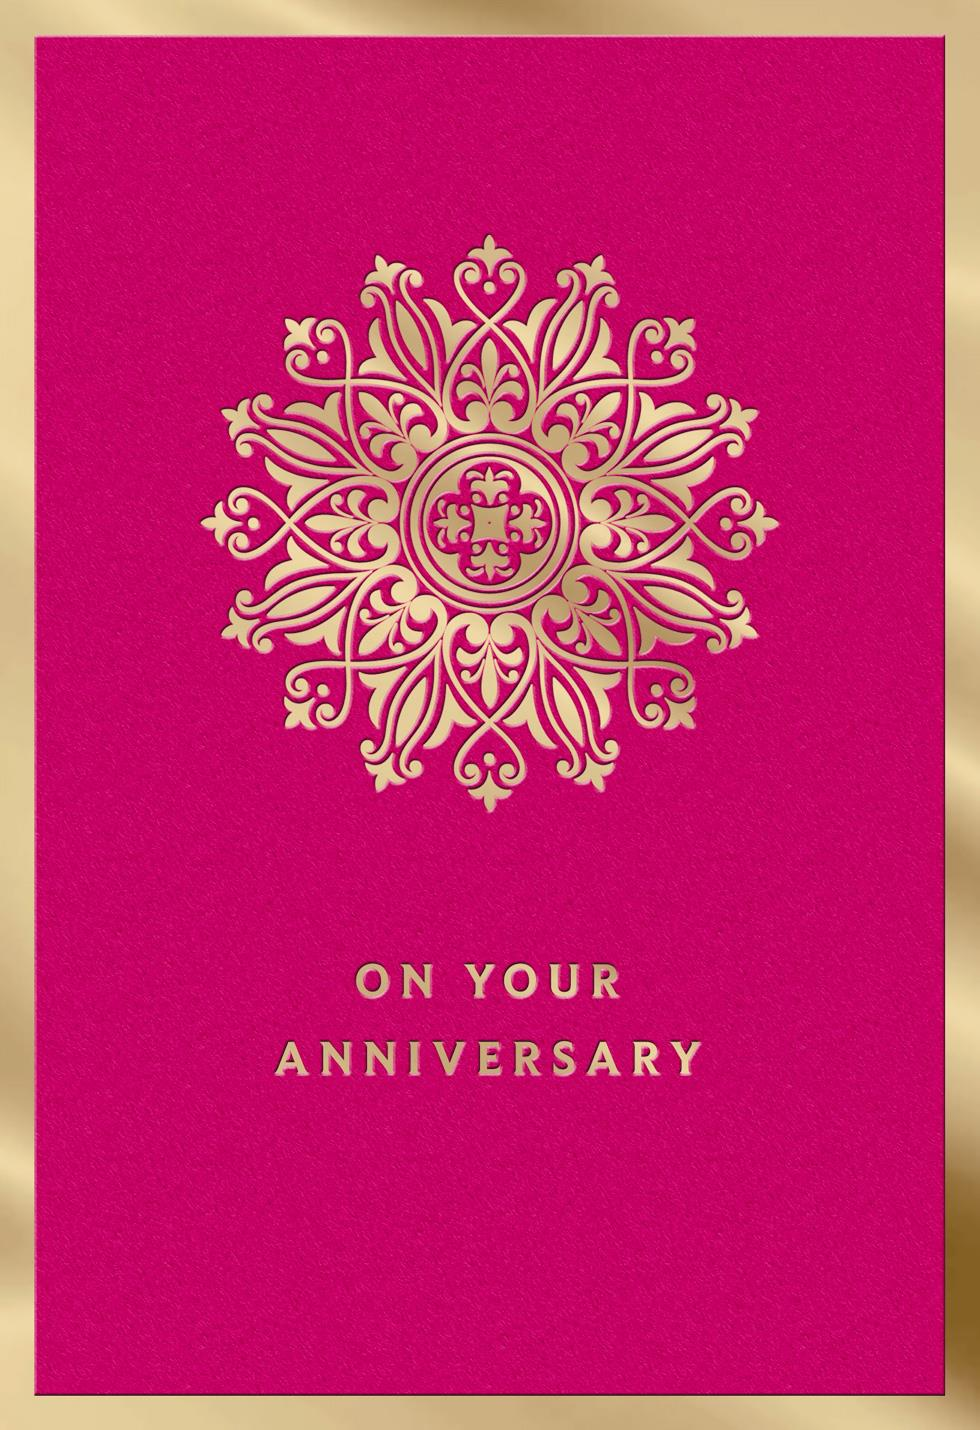 Many More Years Of Happiness Anniversary Card Greeting